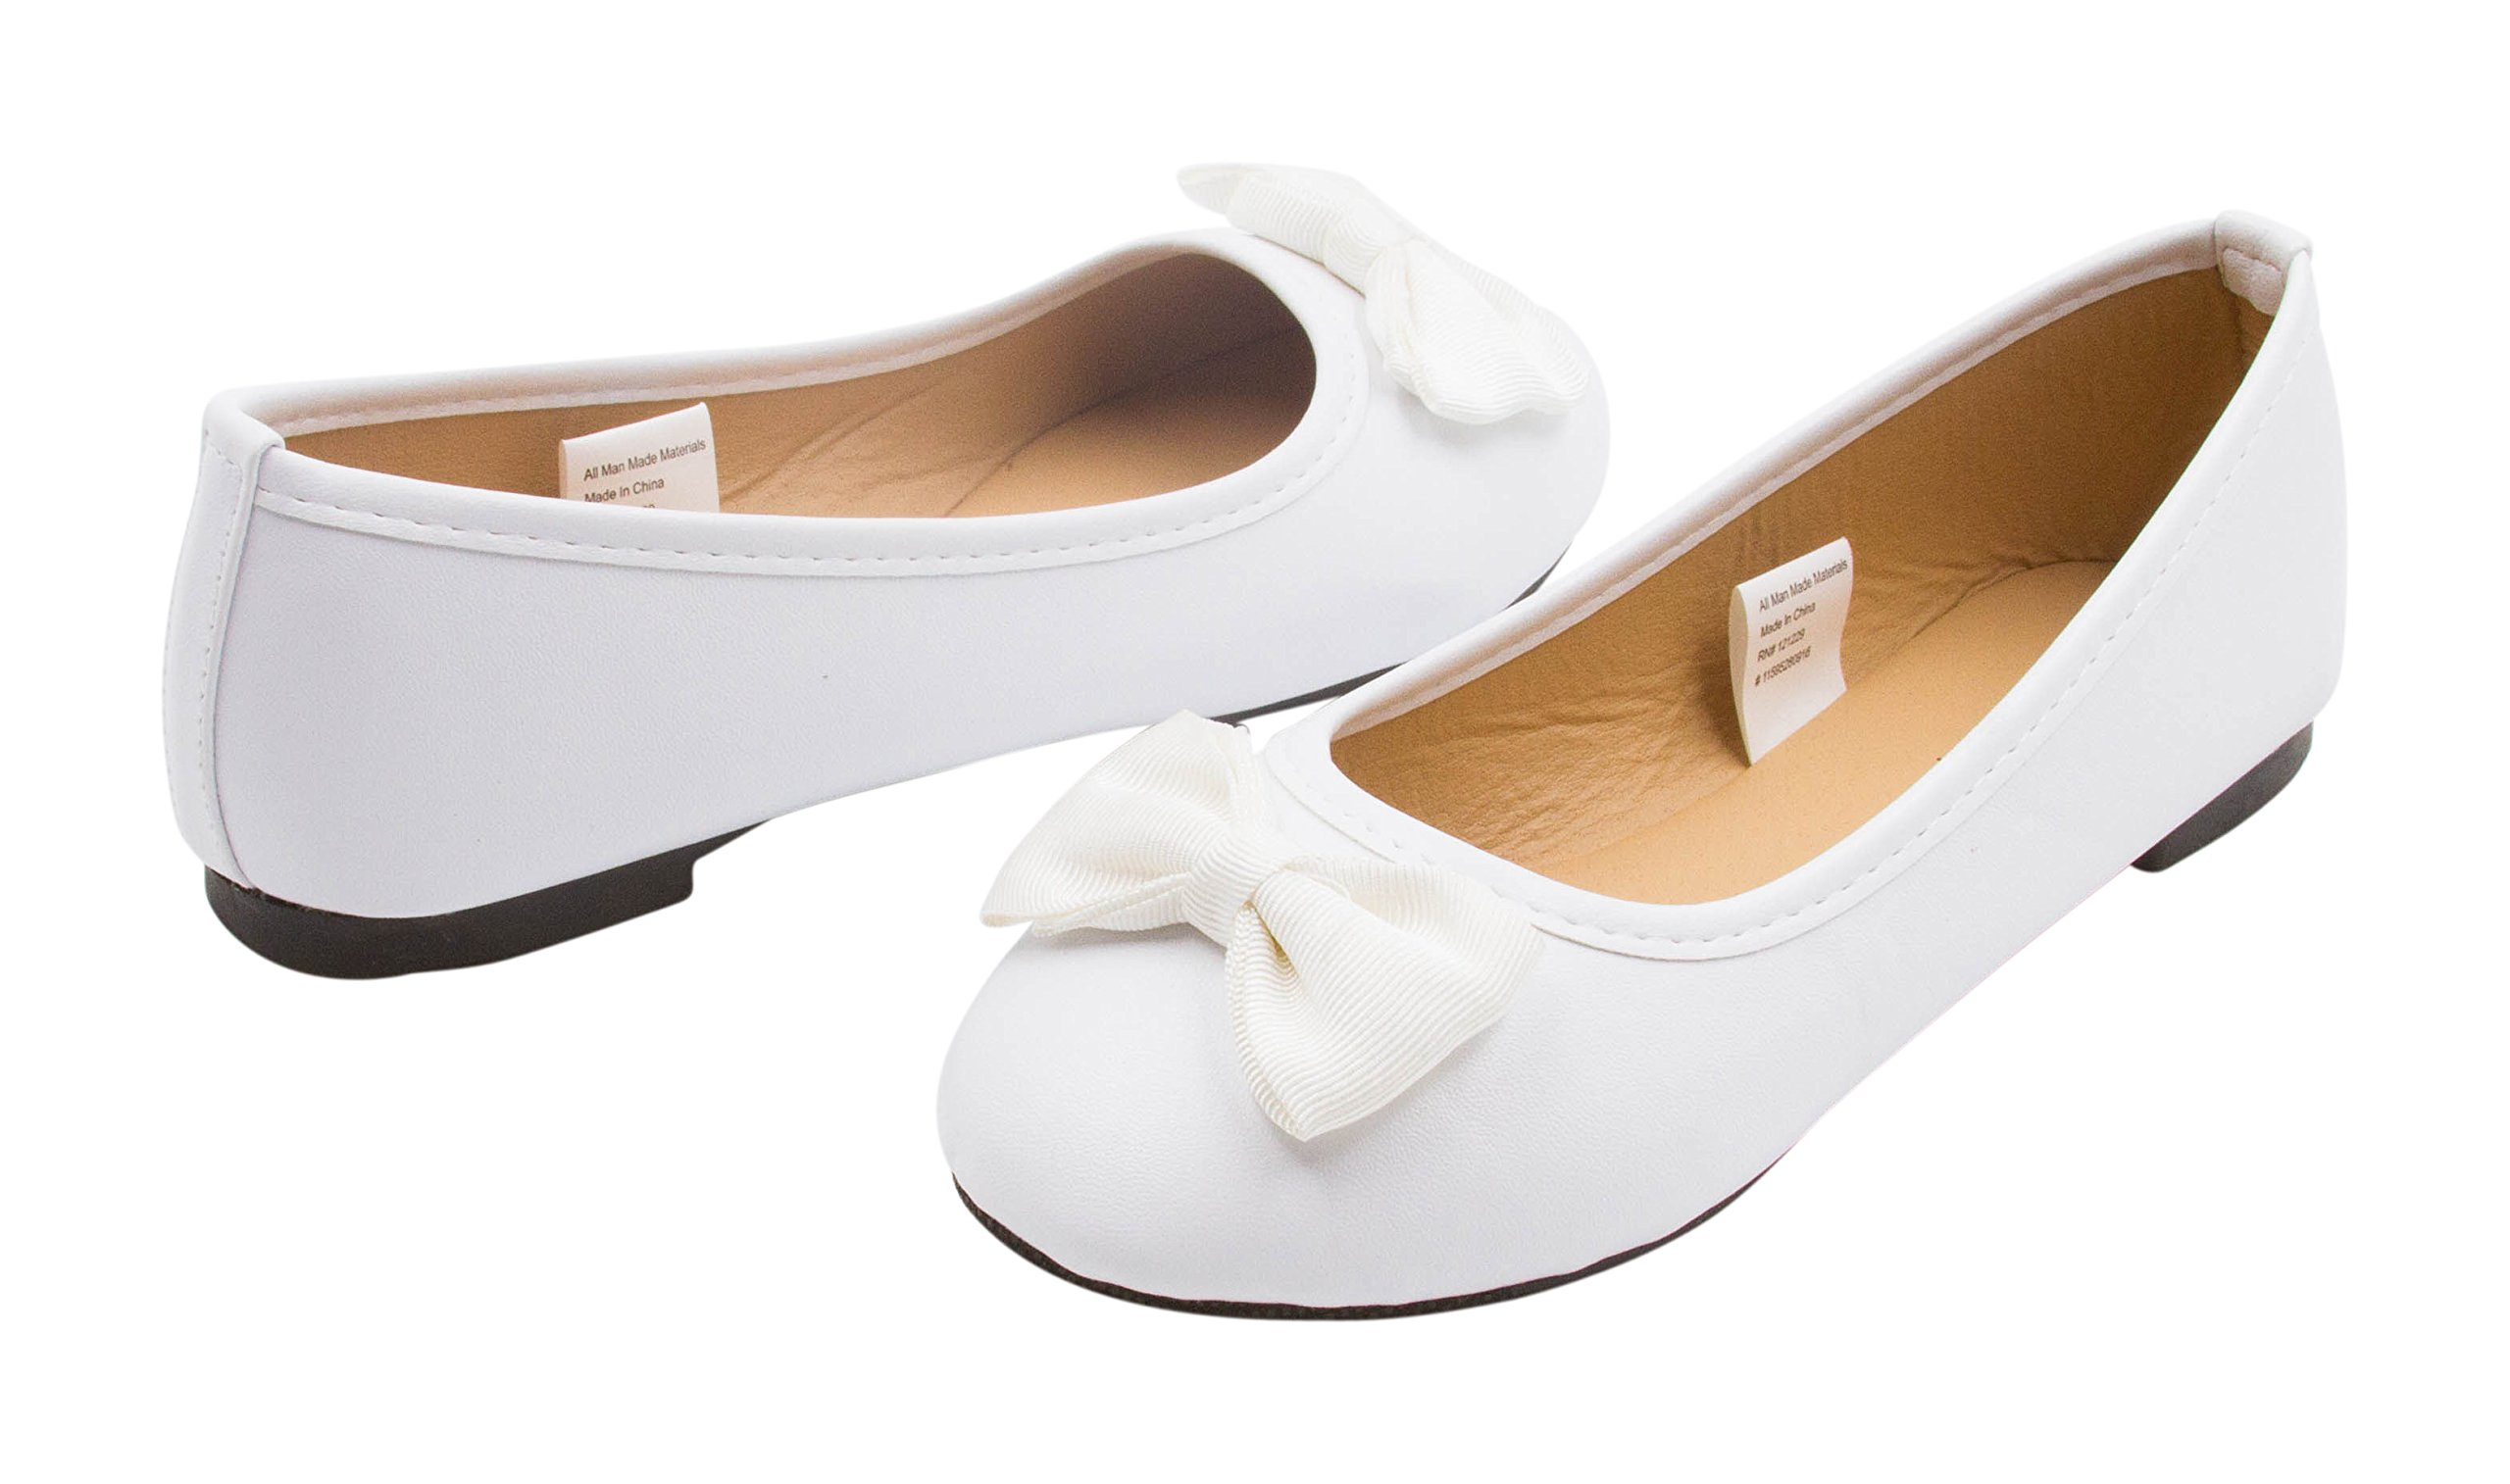 Girls Ballet Flats Size 11-12 Round Toe Embellished with Grosgrain Bows Slip-On Shoes Flexible PU Leather White